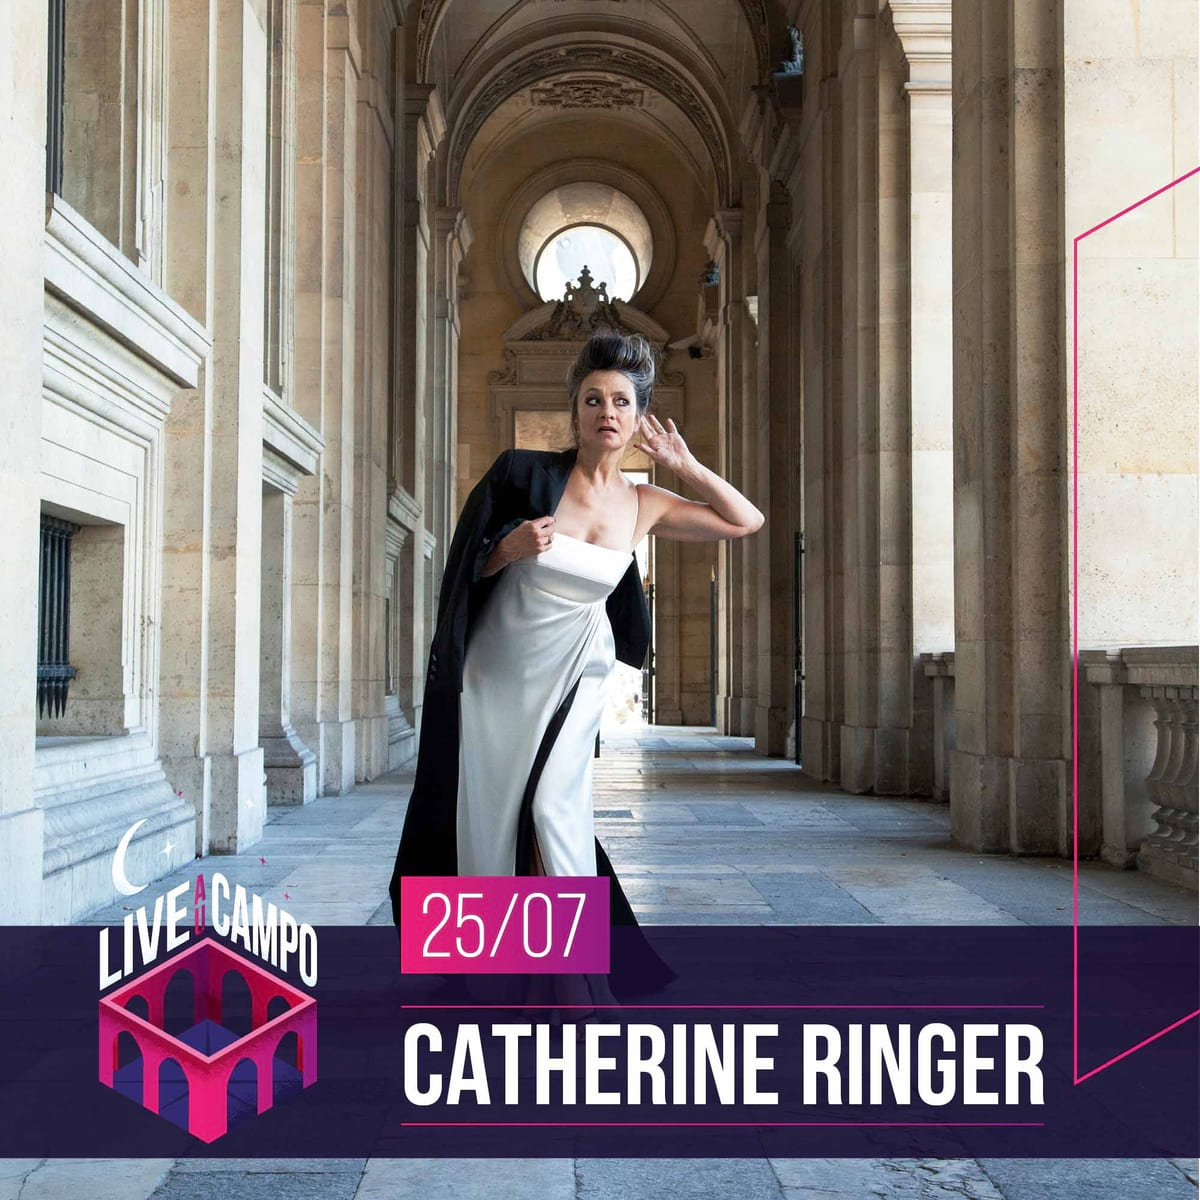 catherine ringer live au campo